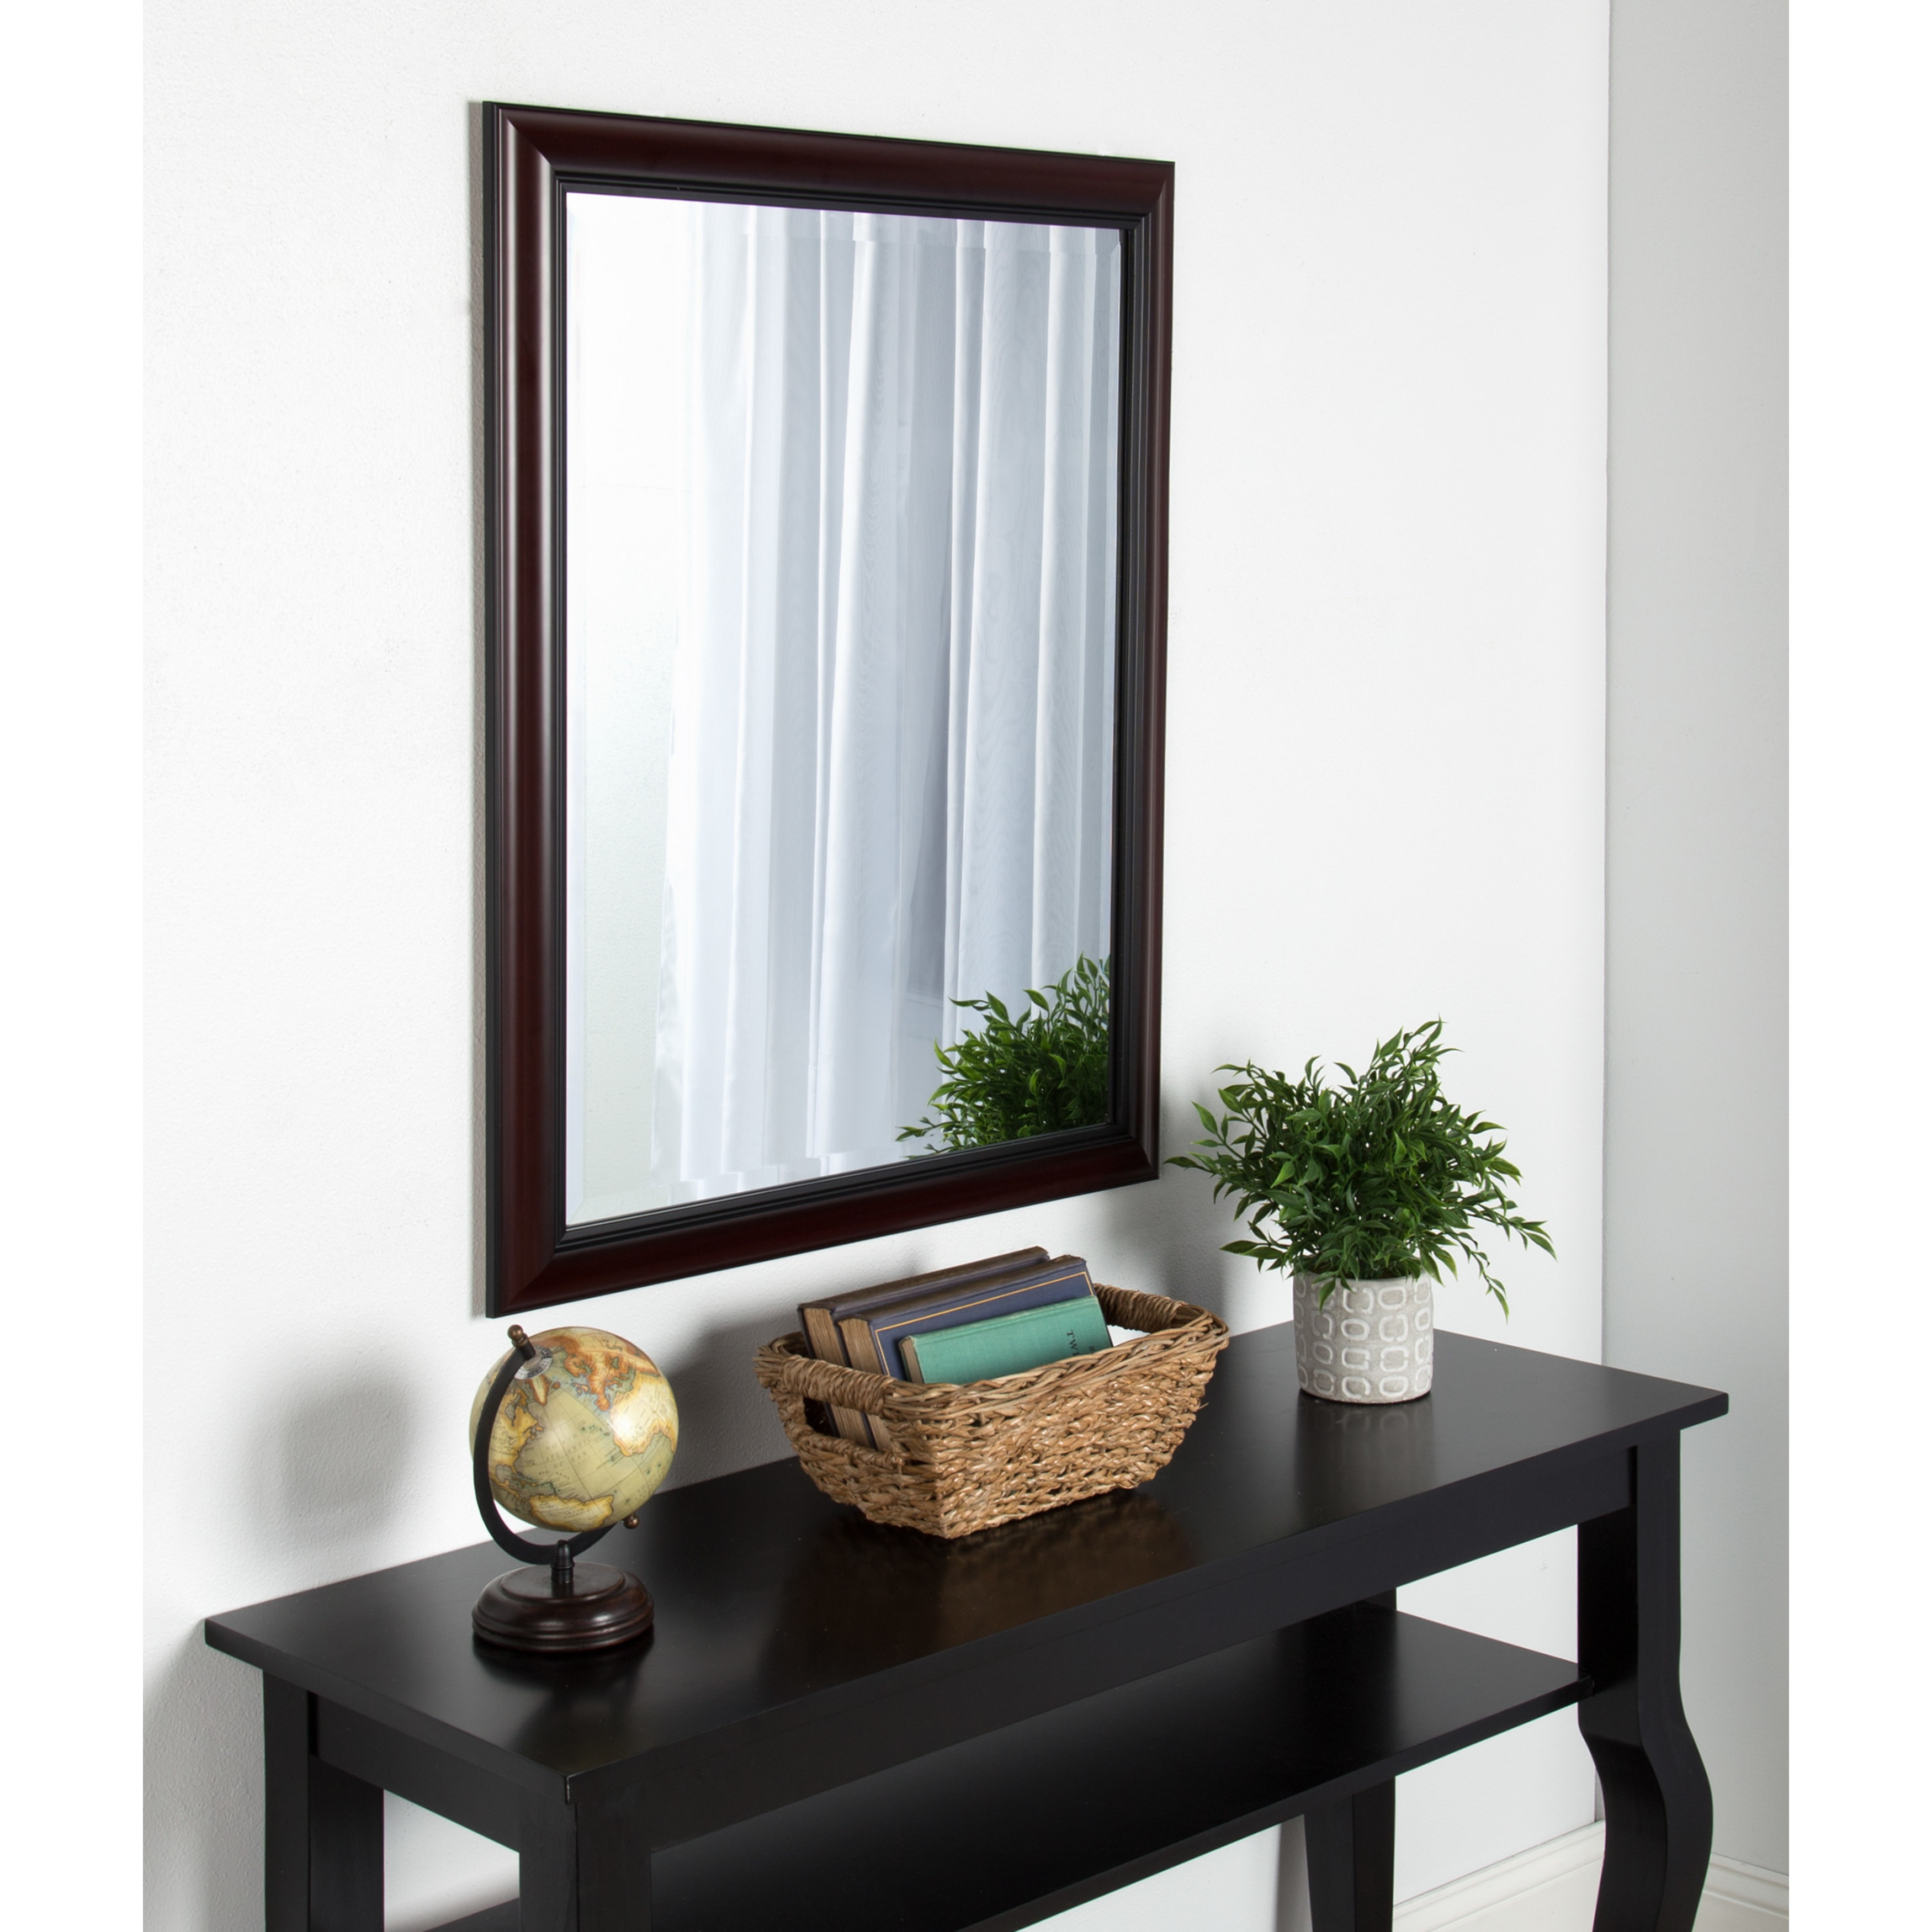 Shop Kate And Laurel Dalat Cherry Framed Beveled Wall Mirror Free